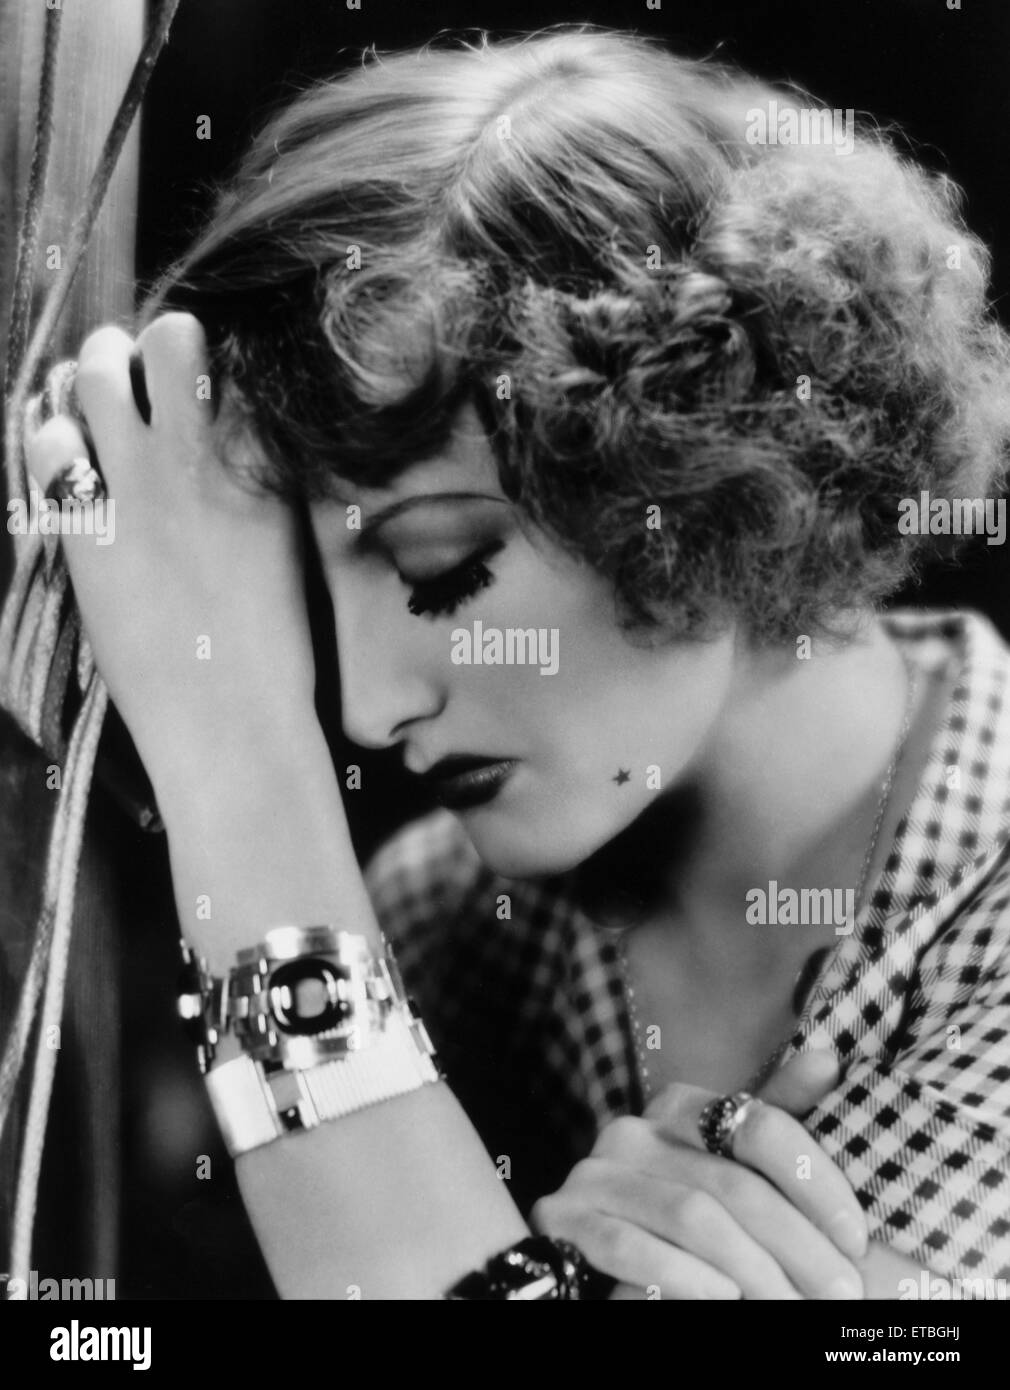 Joan Crawford, on-set of the Film, 'Rain' Directed by Lewis Milestone, 1932 - Stock Image